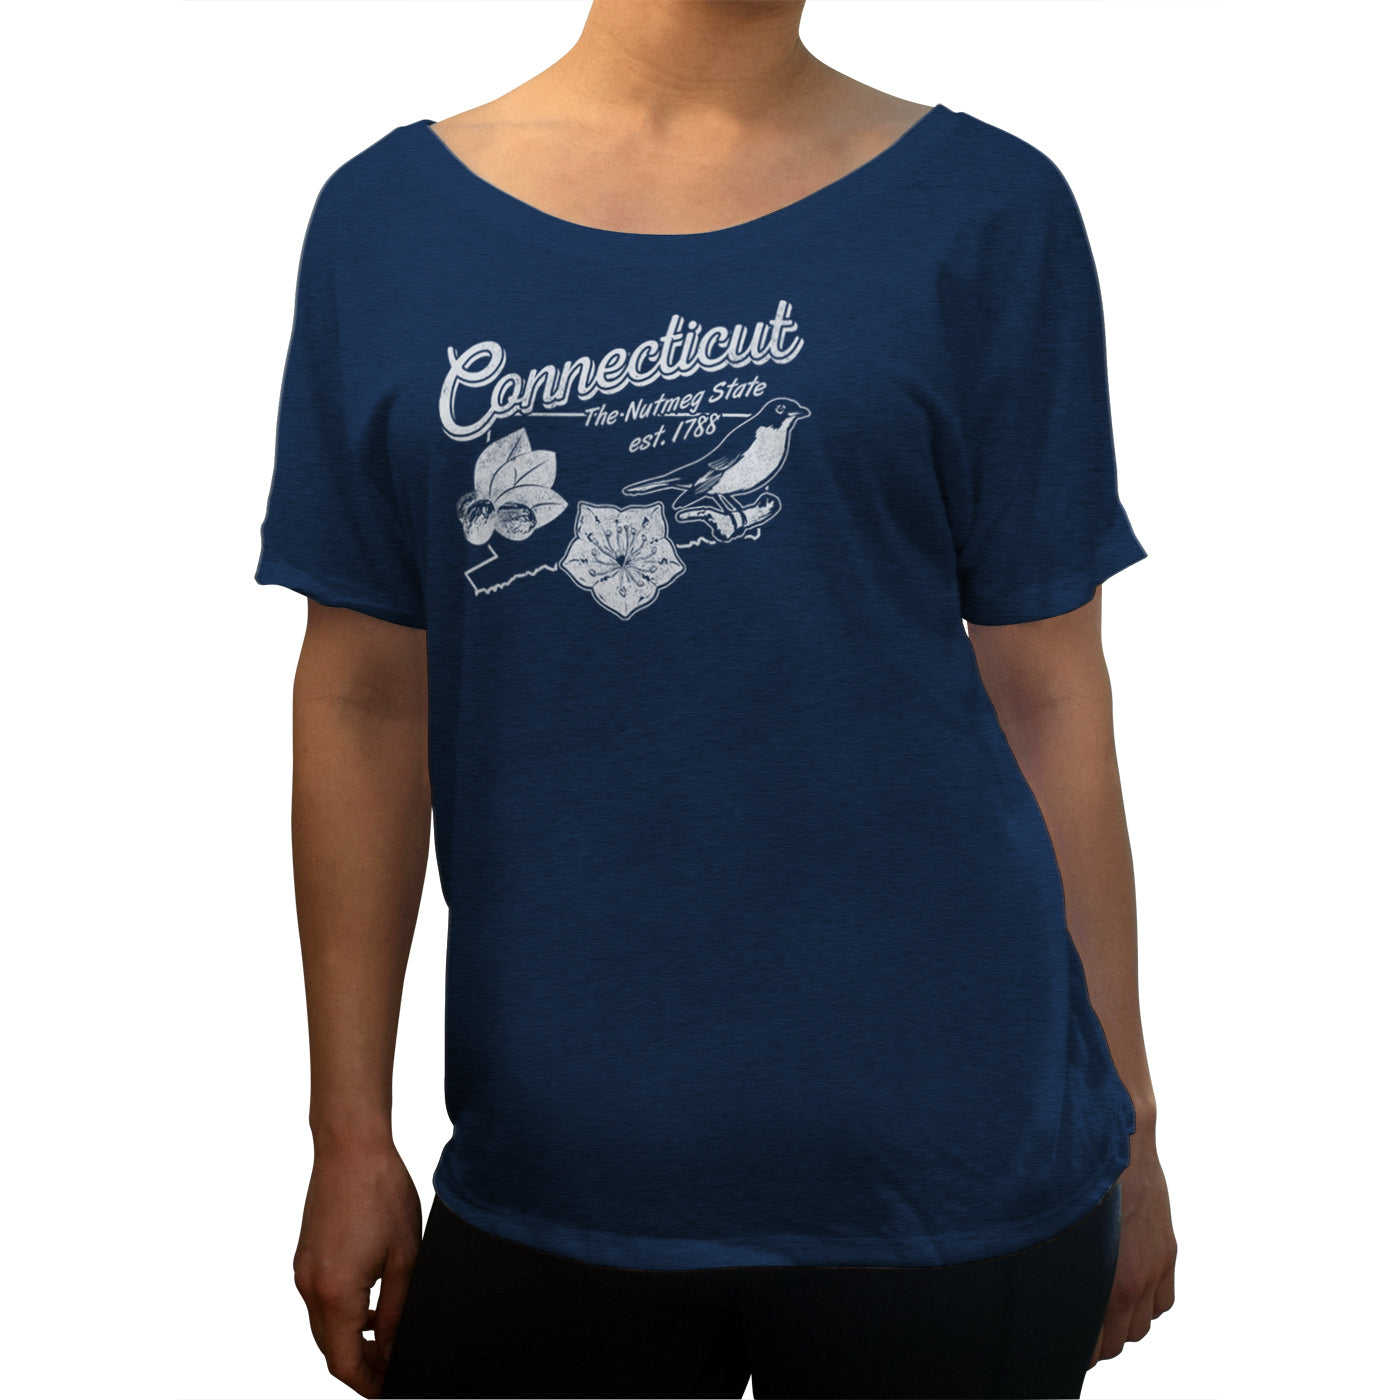 Women's Vintage Connecticut Scoop Neck T-Shirt